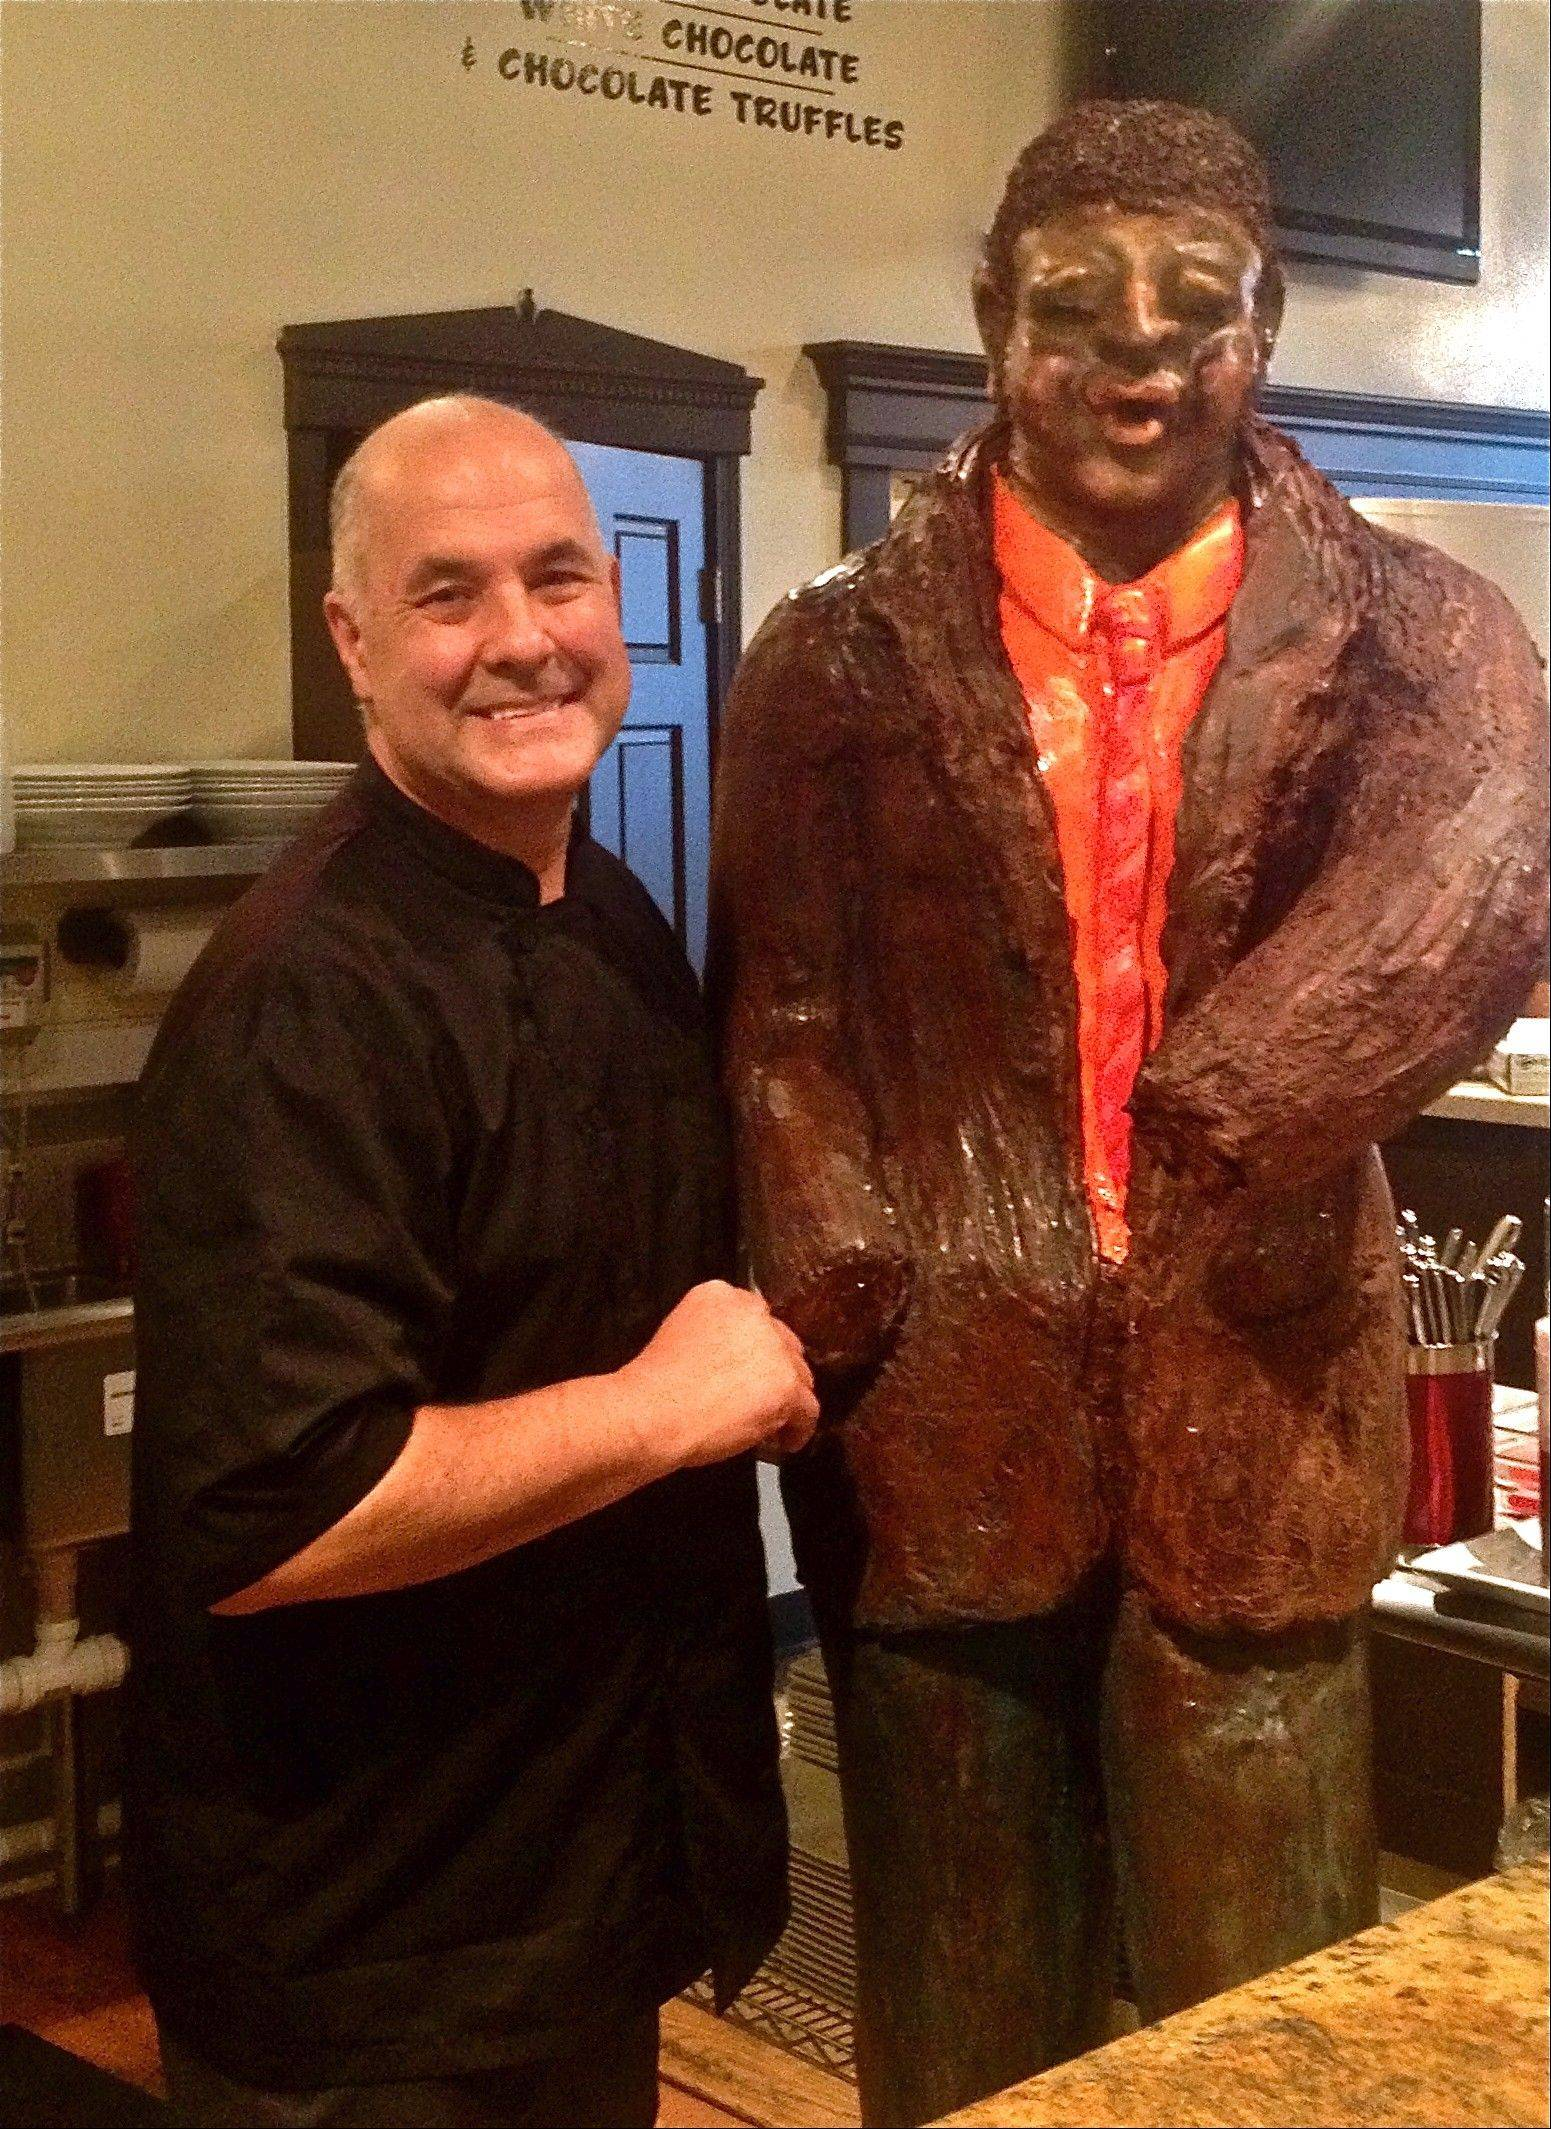 Pastry chef Alain Roby, owner of All Chocolate Kitchen in Geneva, has sculpted a blues musician out of 1,000 pounds of chocolate.